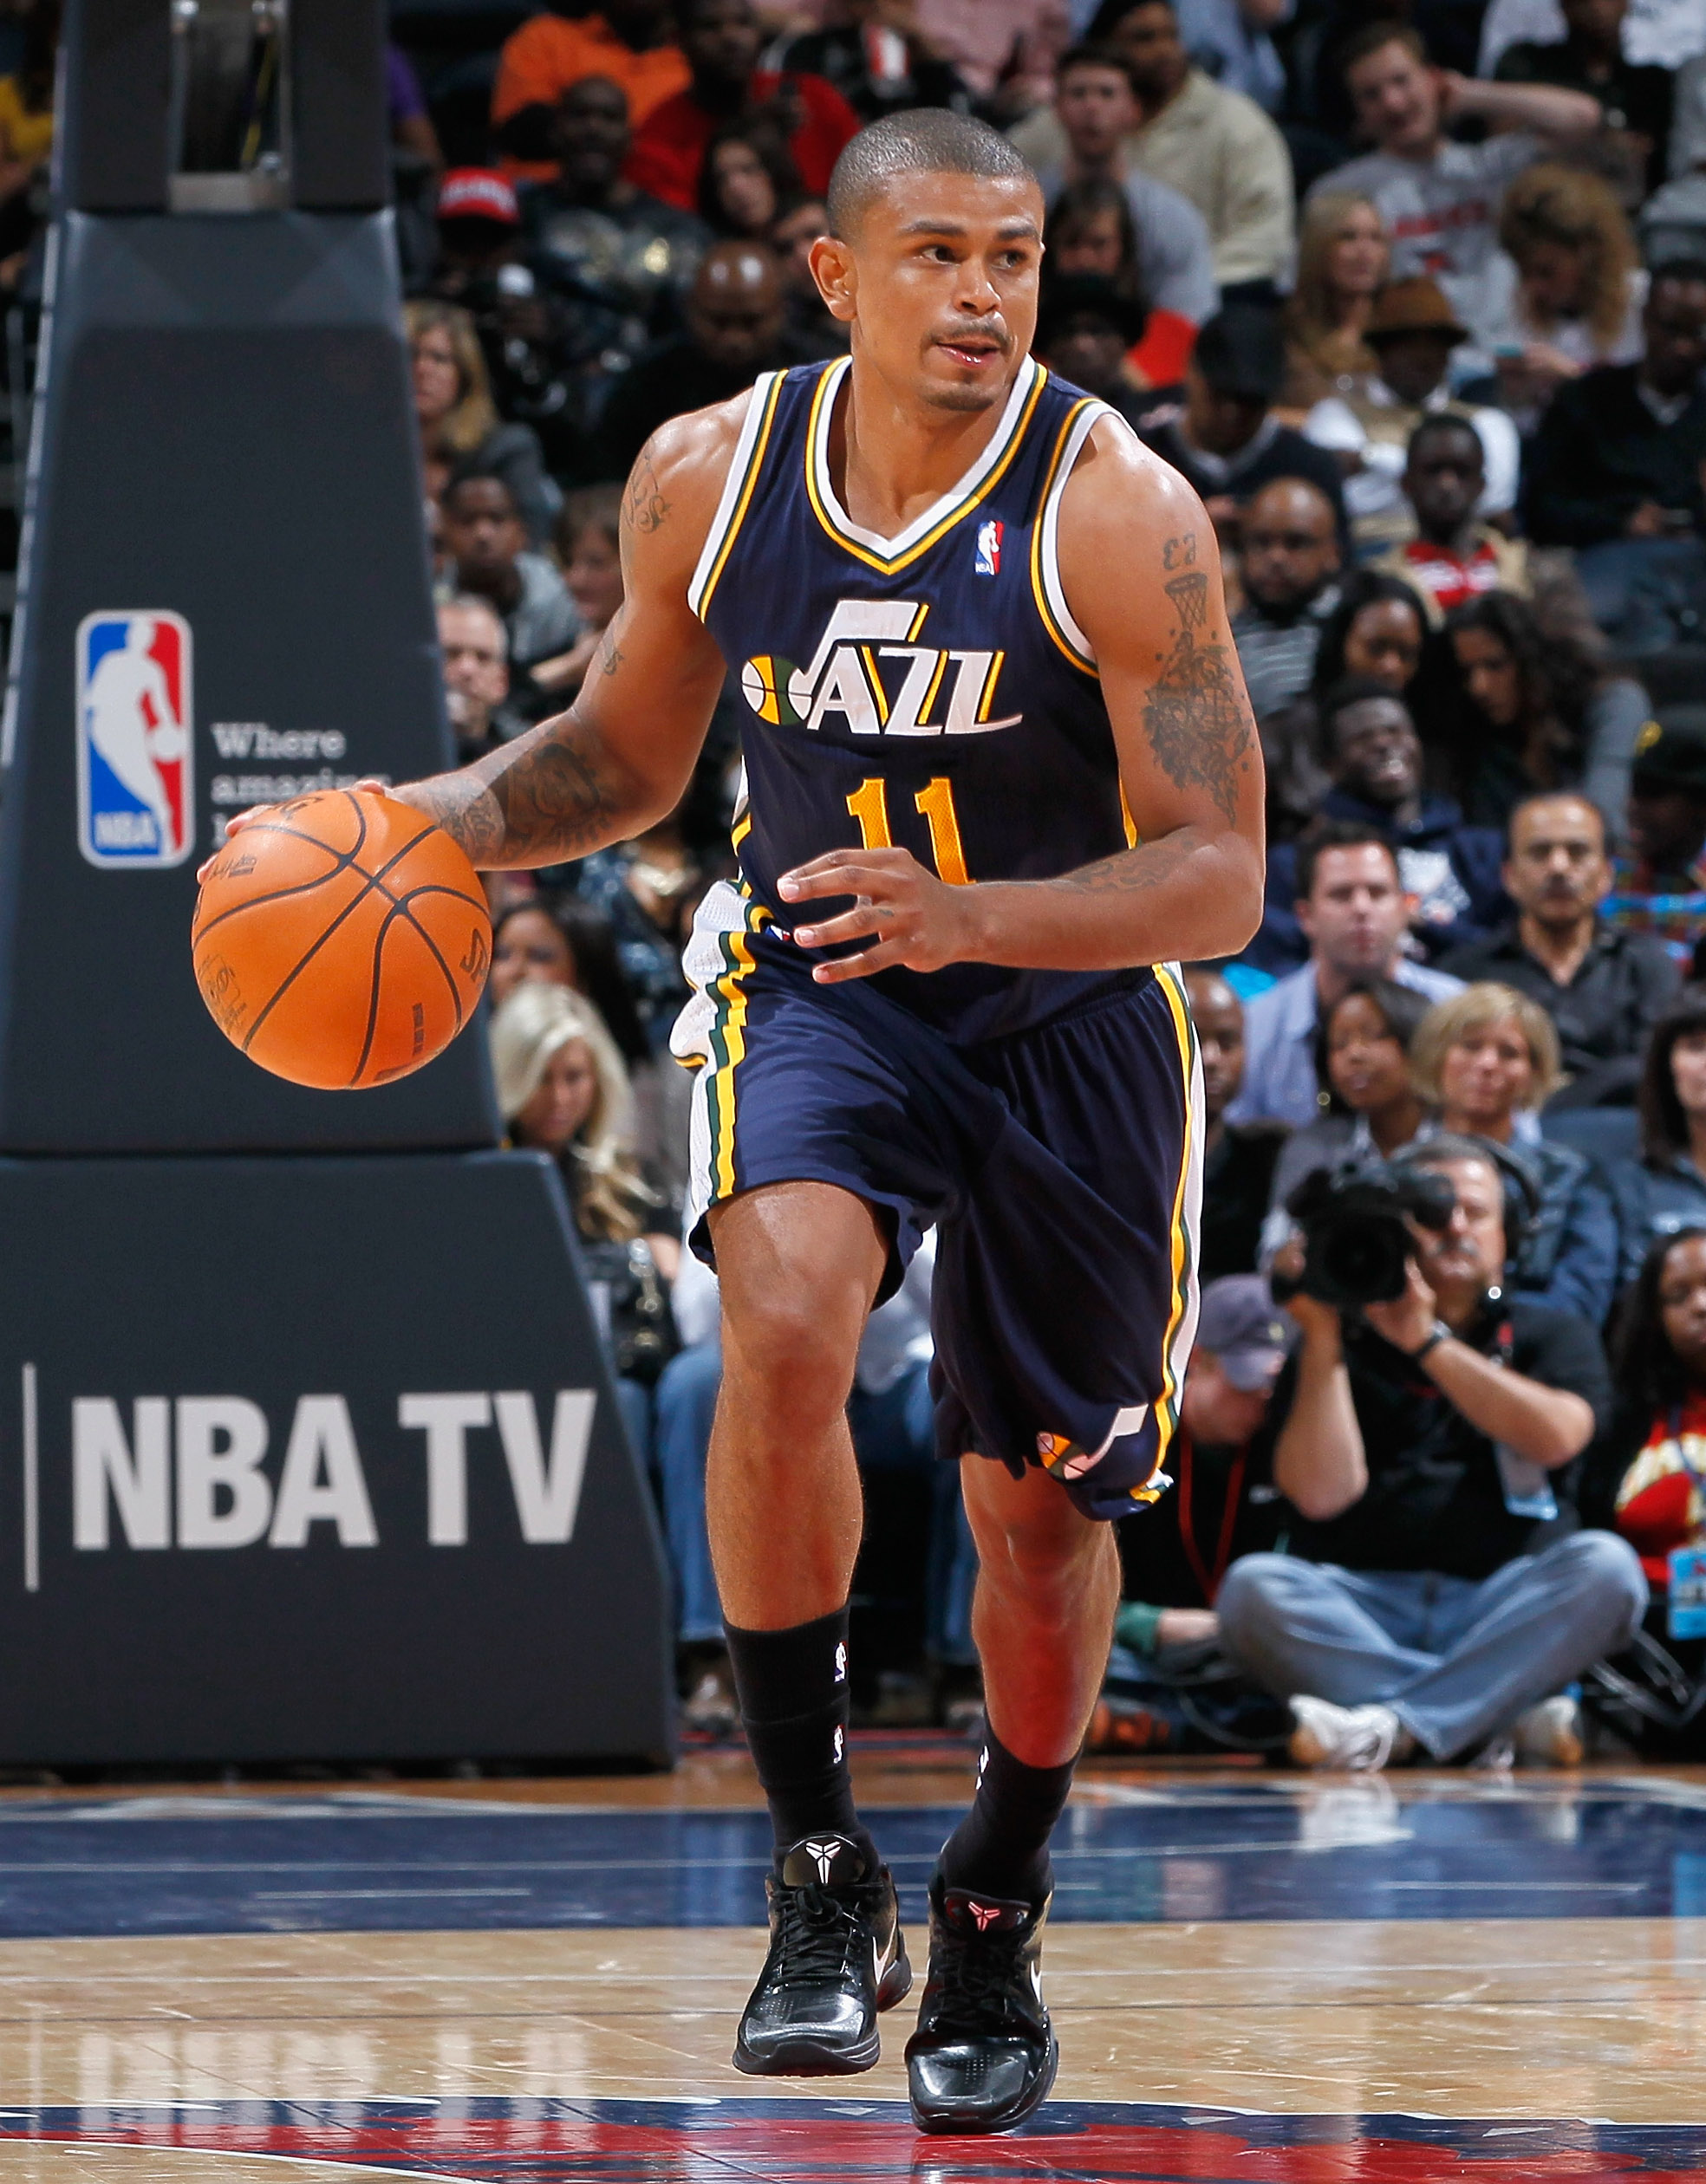 ATLANTA - NOVEMBER 12:  Earl Watson #11 of the Utah Jazz against the Atlanta Hawks at Philips Arena on November 12, 2010 in Atlanta, Georgia.  NOTE TO USER: User expressly acknowledges and agrees that, by downloading and/or using this Photograph, User is